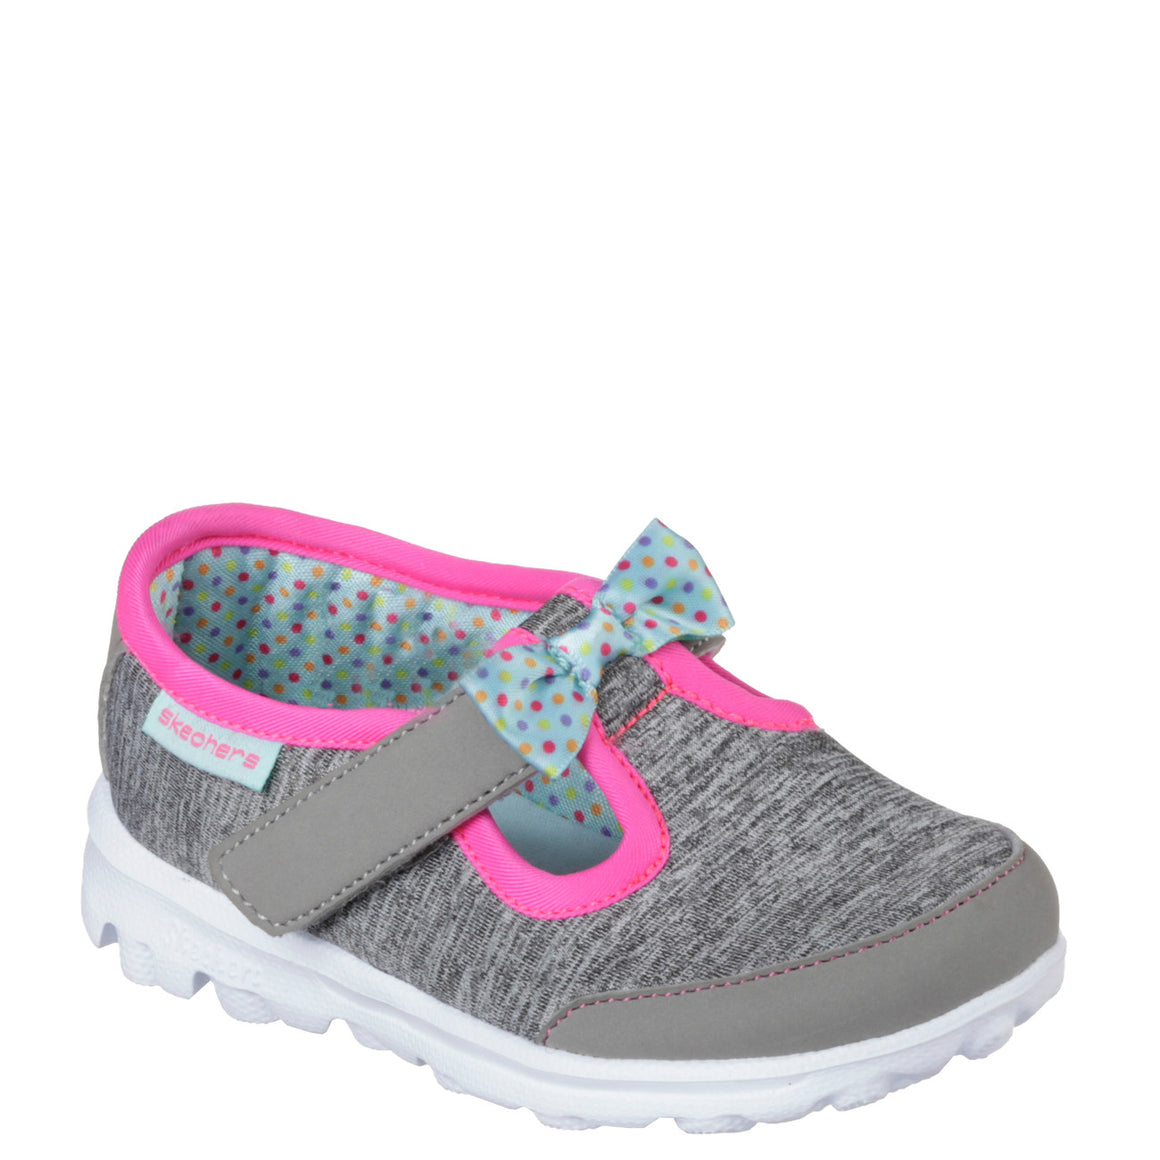 Skechers Infant's Go Walk Bitty Bow - Gray/Mint 81068